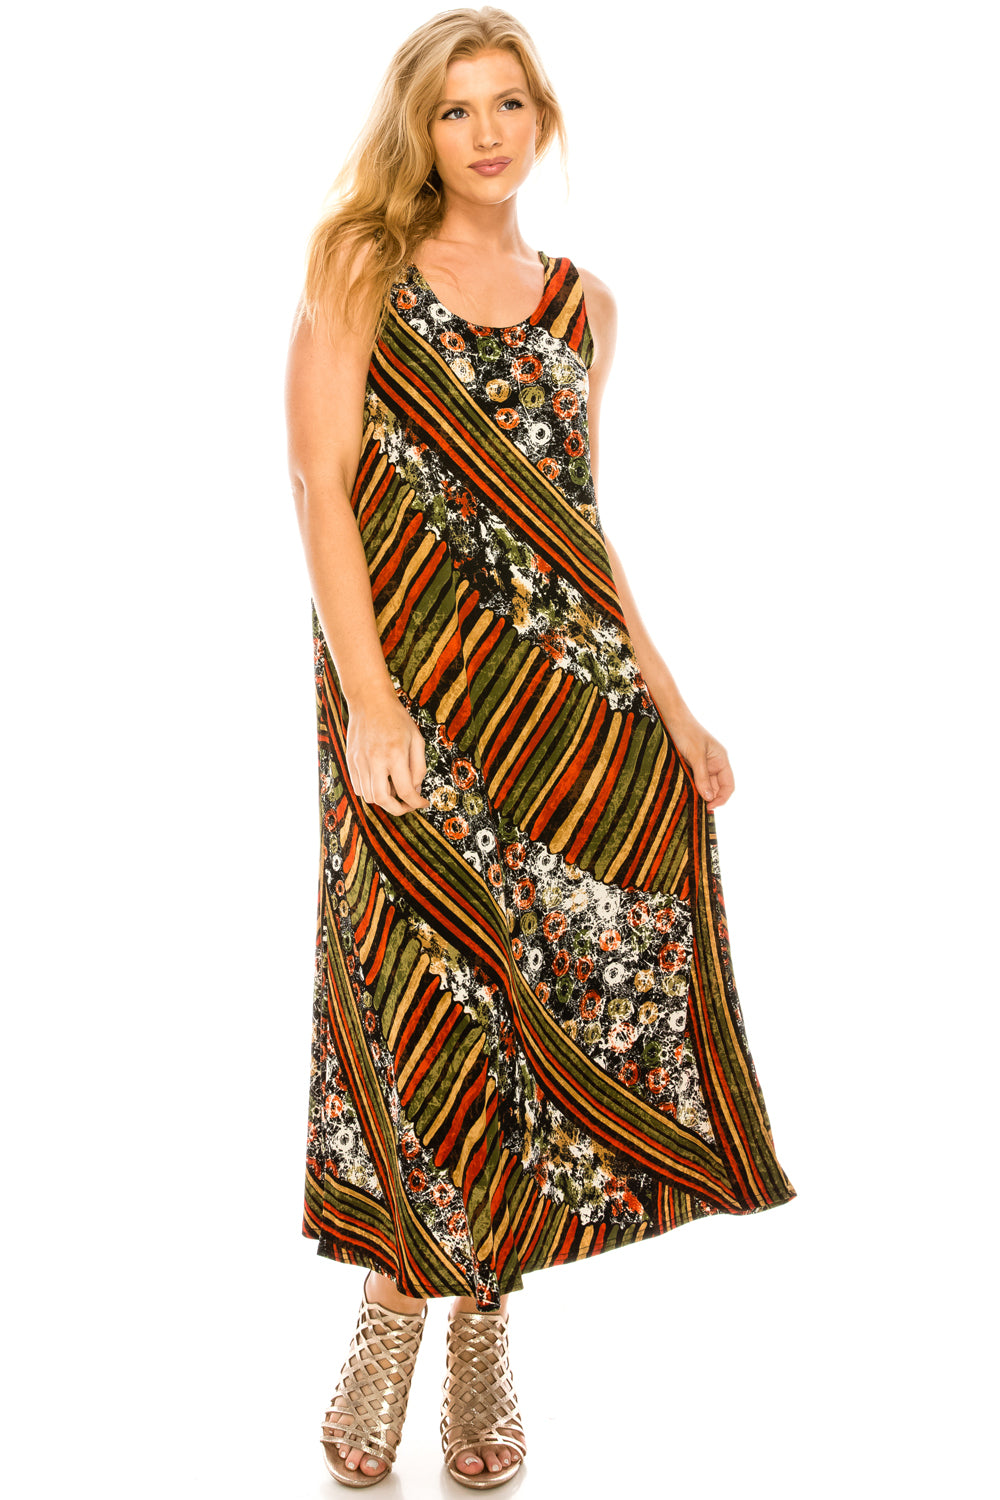 Jostar Women's Stretchy Tank Long Dress Sleeveless Plus Print, 700BN-TXP-W160 - Jostar Online